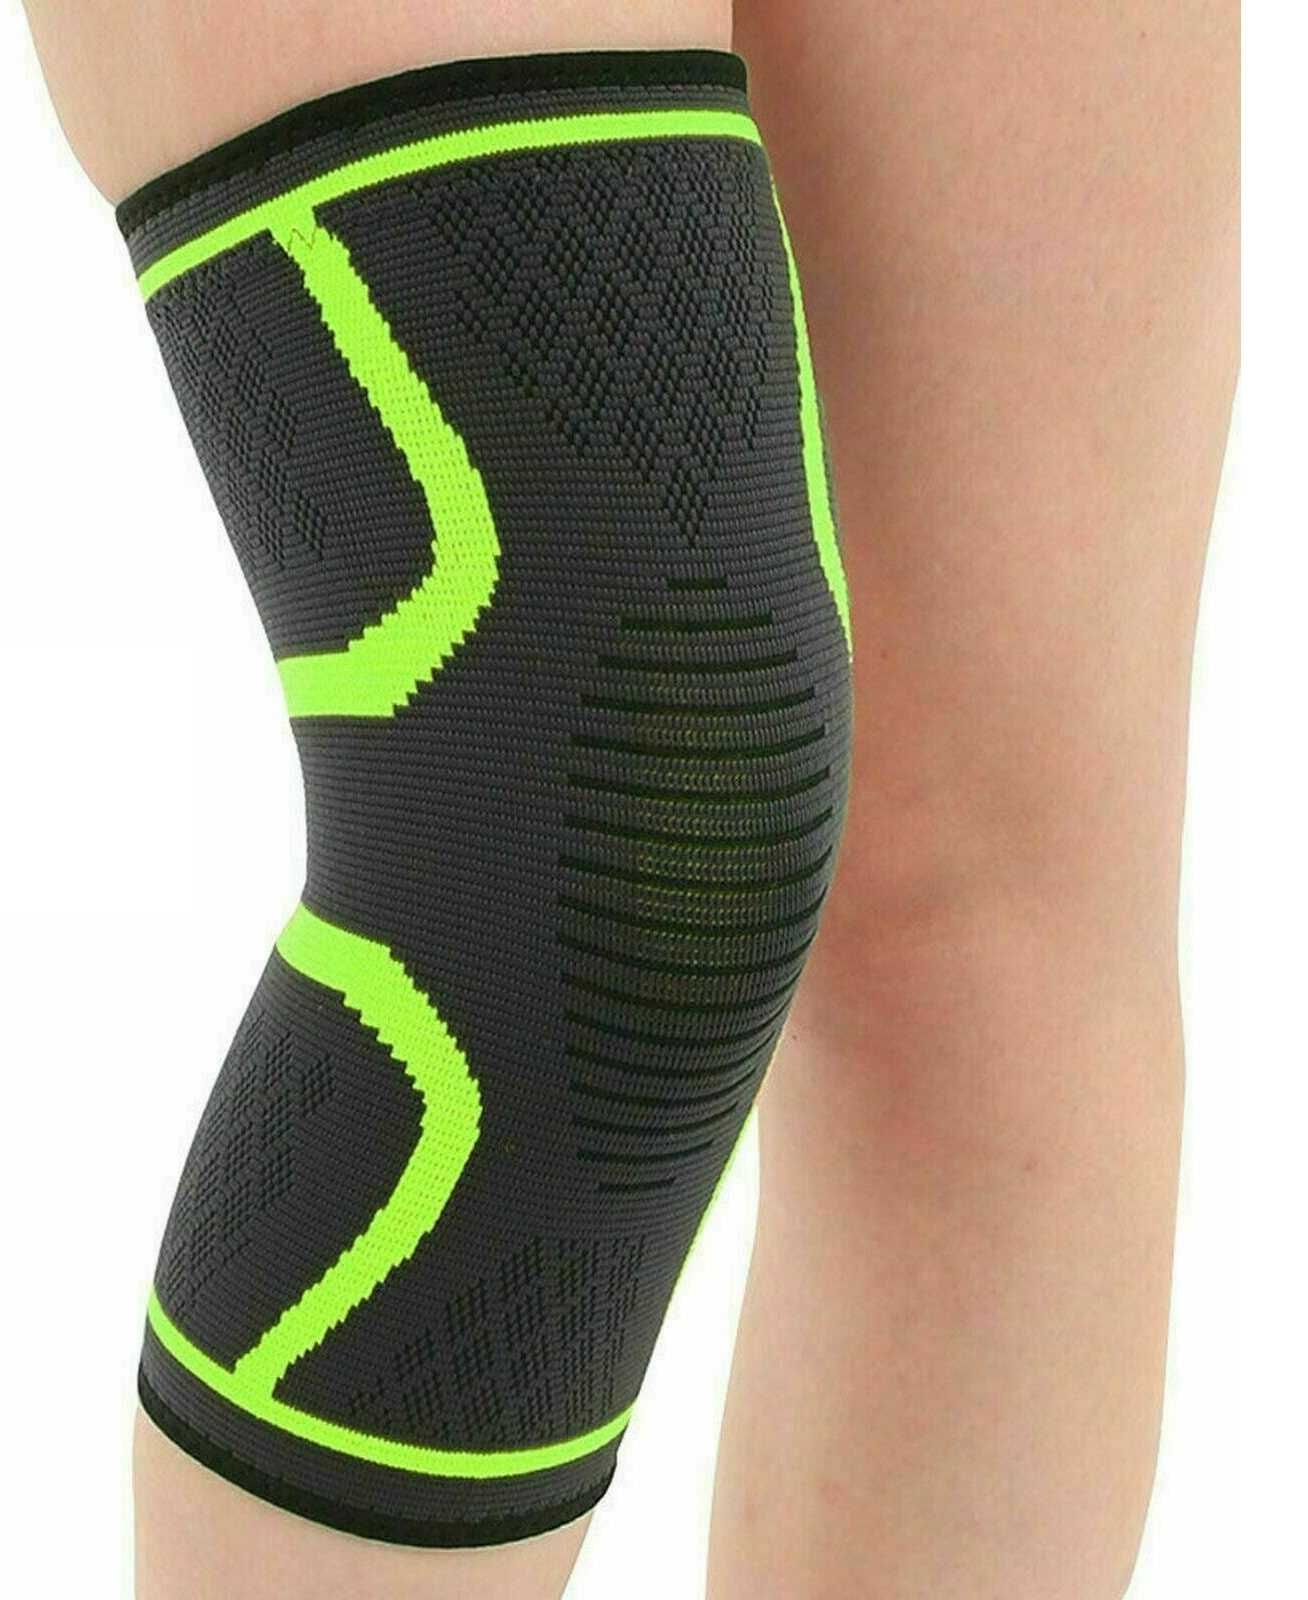 Green Large Knee Support Brace Compression Sleeve Arthritis For Running Gym Sports Protector